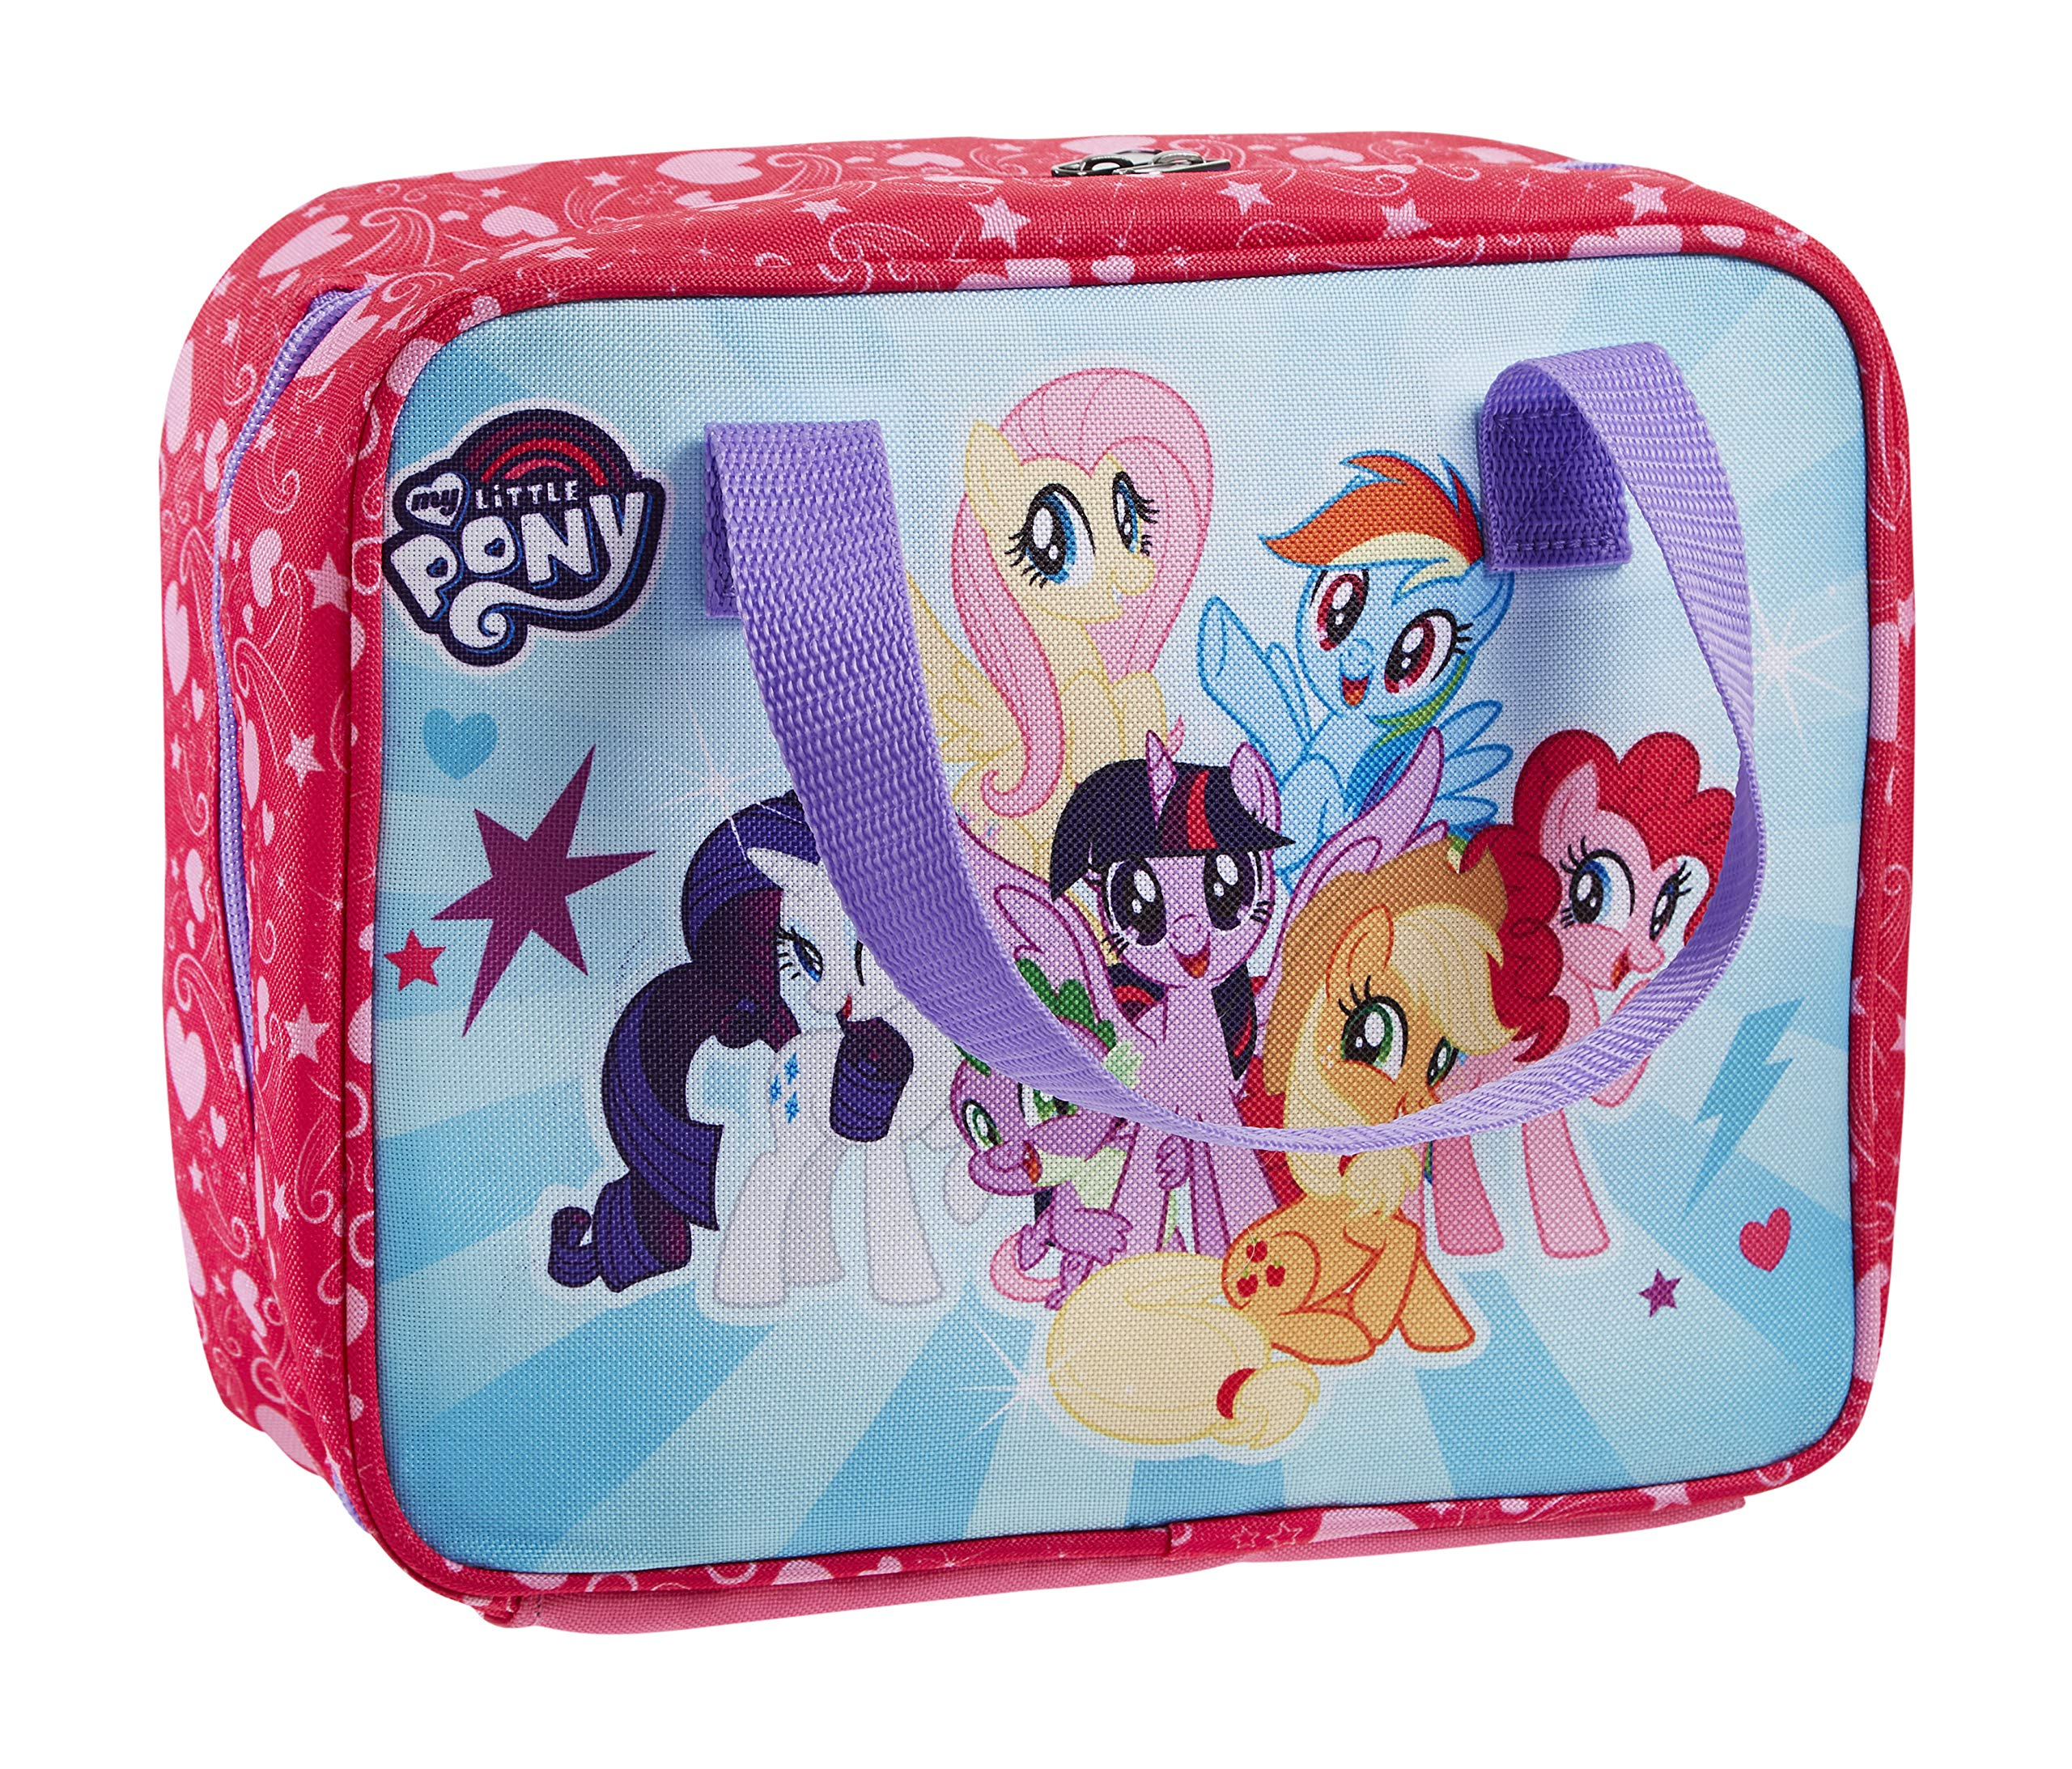 Fit & Fresh Kids Jayden Insulated Lunch Bag with Glitter Ice Pack and Full Zip Closure, Versatile School Lunch Box for Kids, My Little Pony